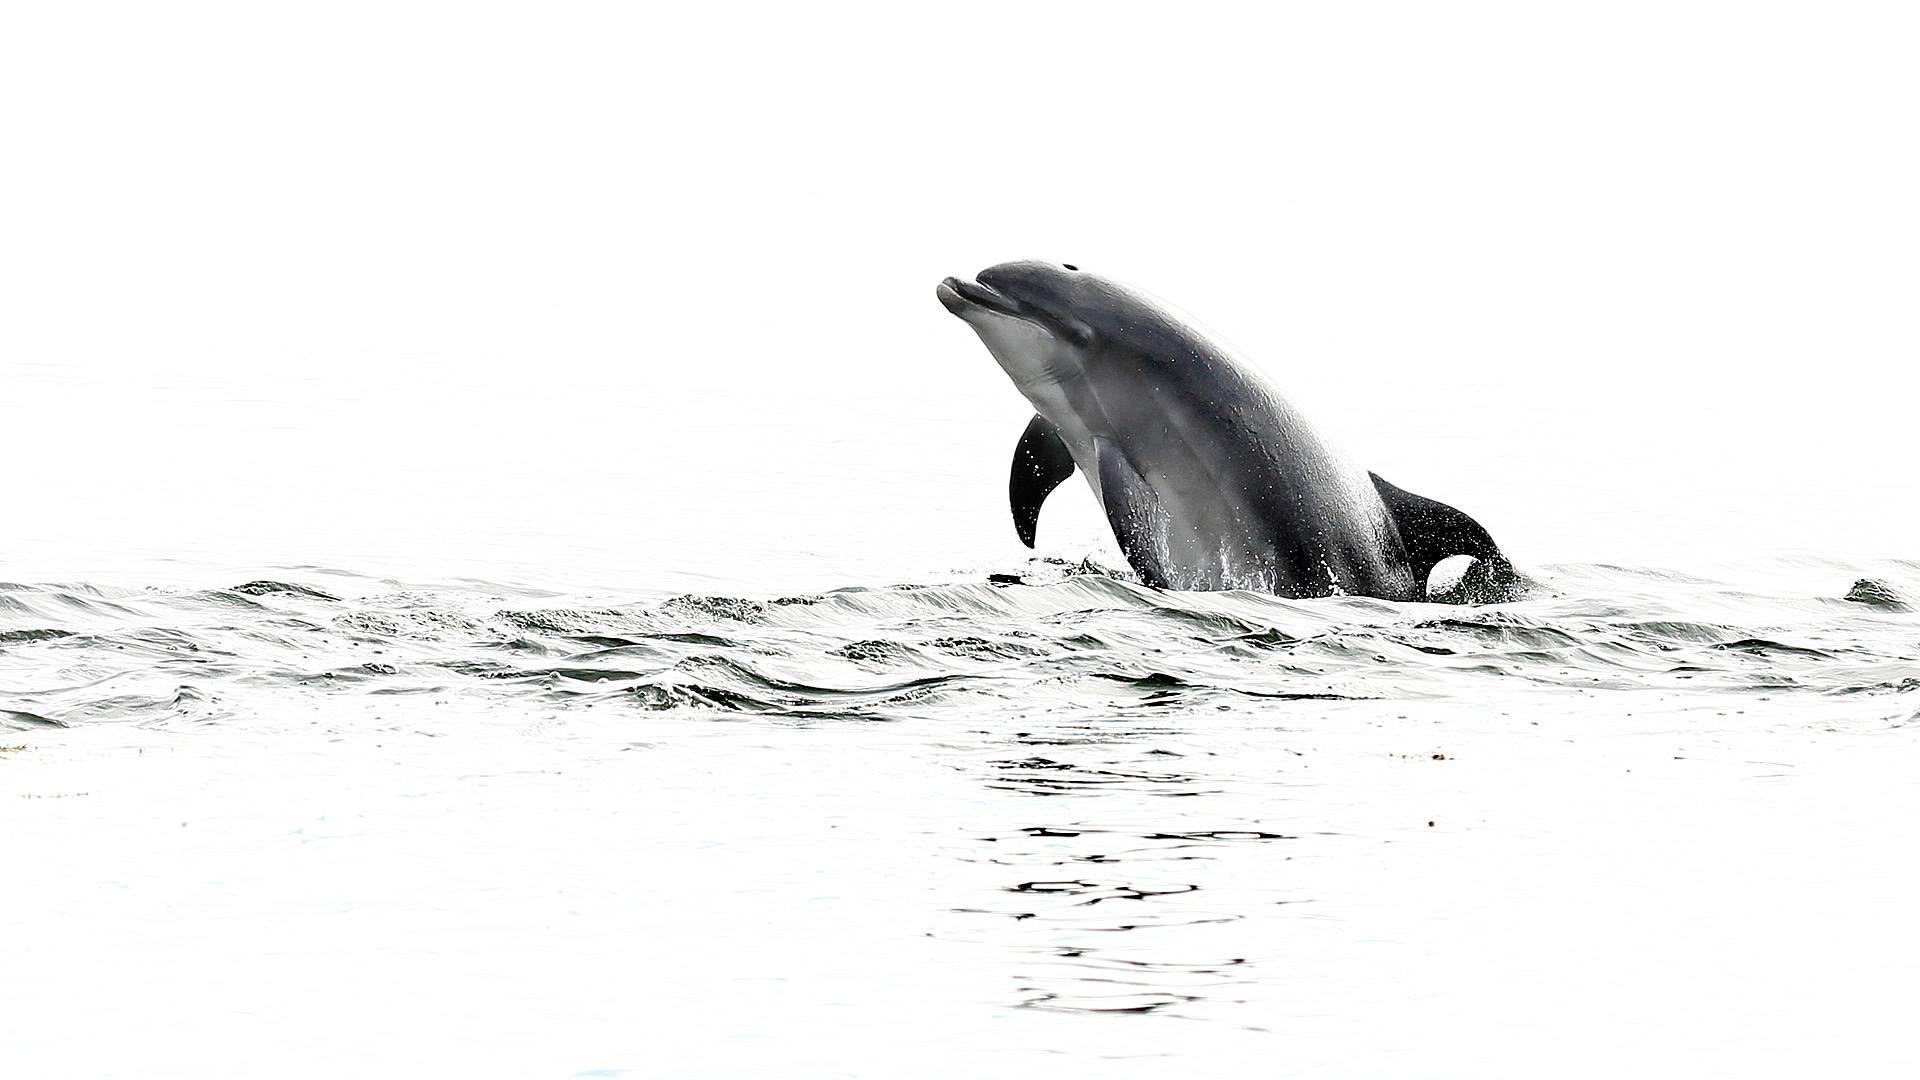 A pod of bottlenose dolphins lives in Cardigan Bay